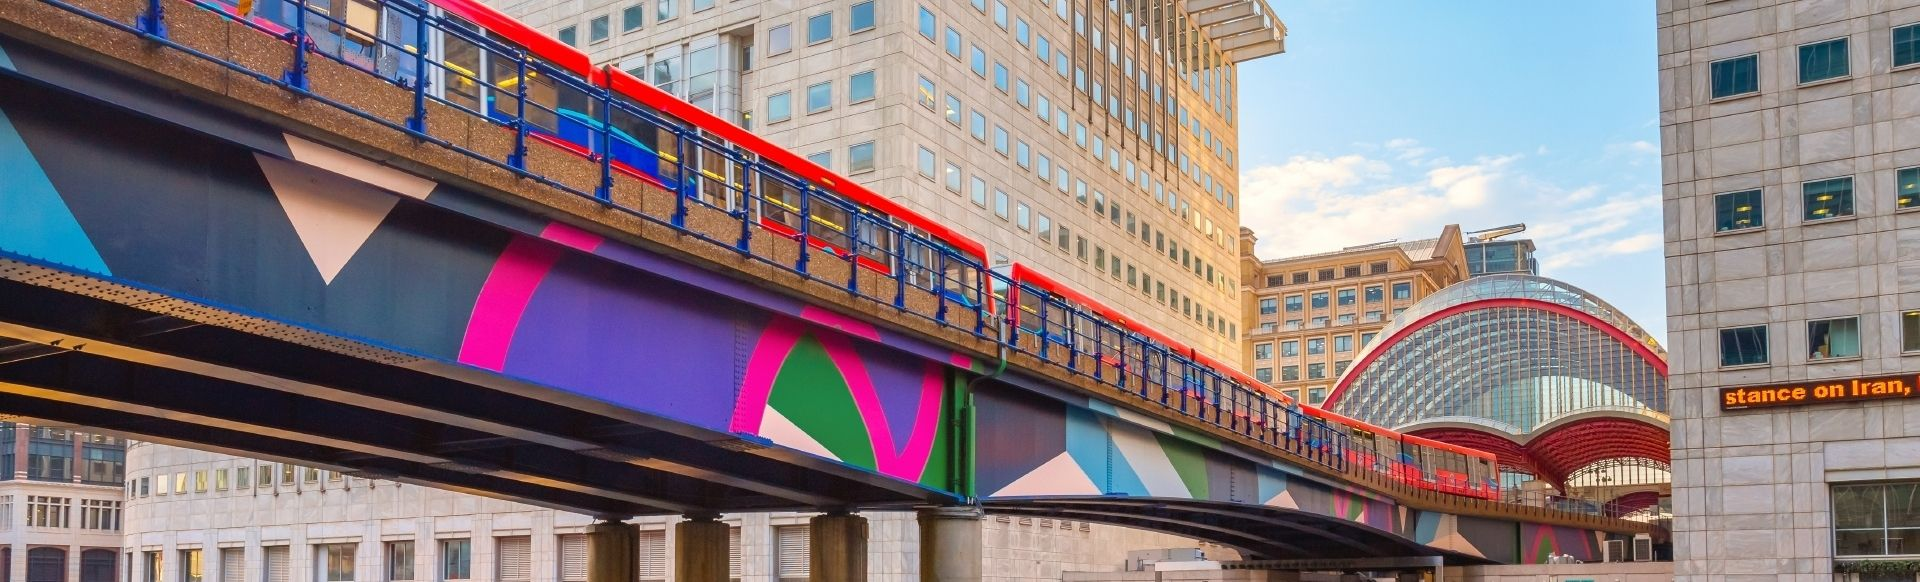 Colourful bridge in Greenwich, Canary Wharf DLR station, with a purple, pink, green and blue pattern on the side. The bridge carries a public transport train and runs in between two buildings.